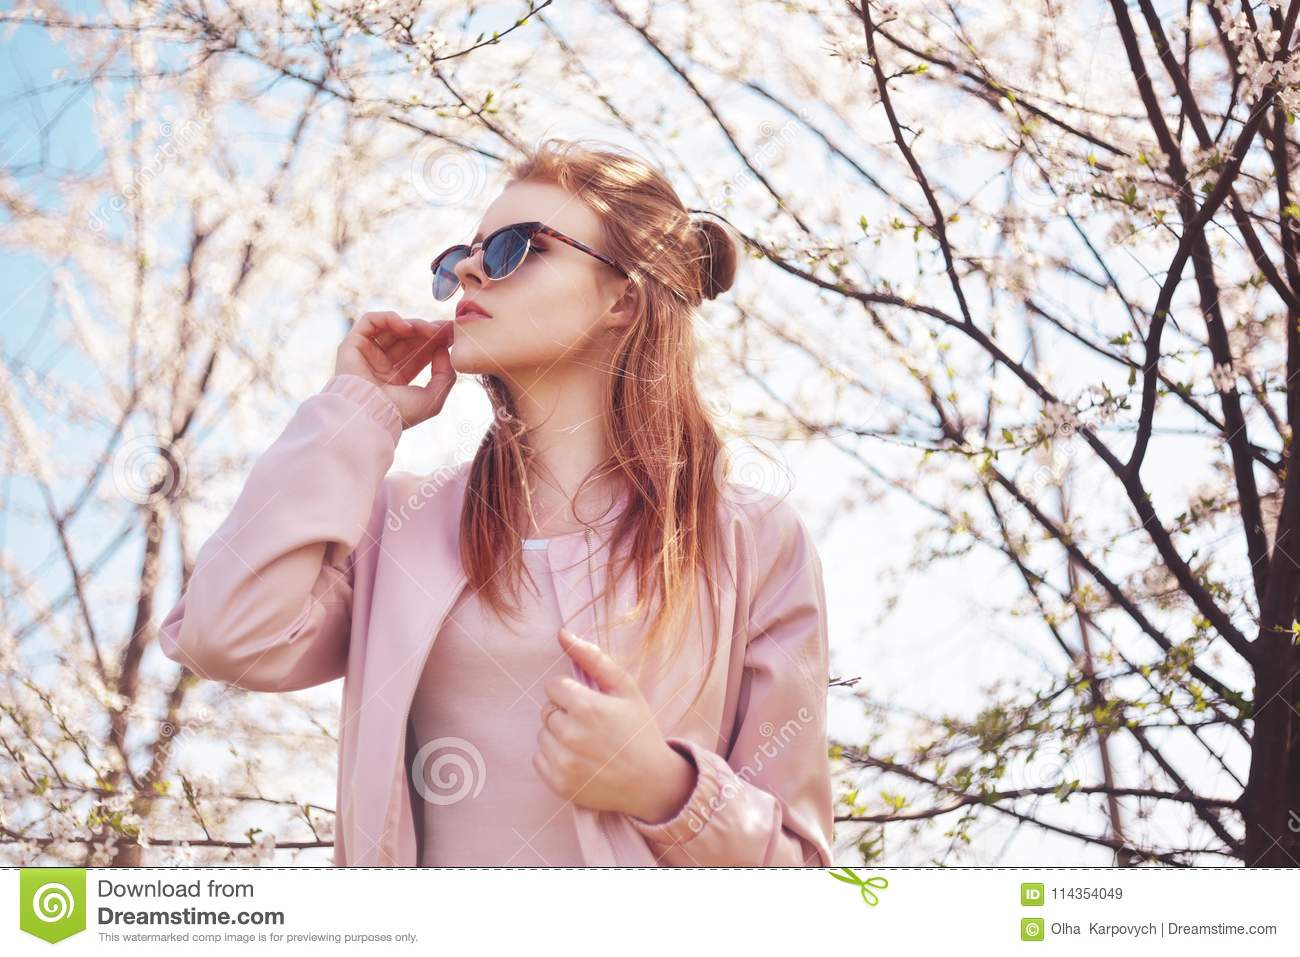 Spring fashion girl outdoors portrait in blooming trees. Beauty Romantic woman in flowers in sunglasses. Sensual Lady.